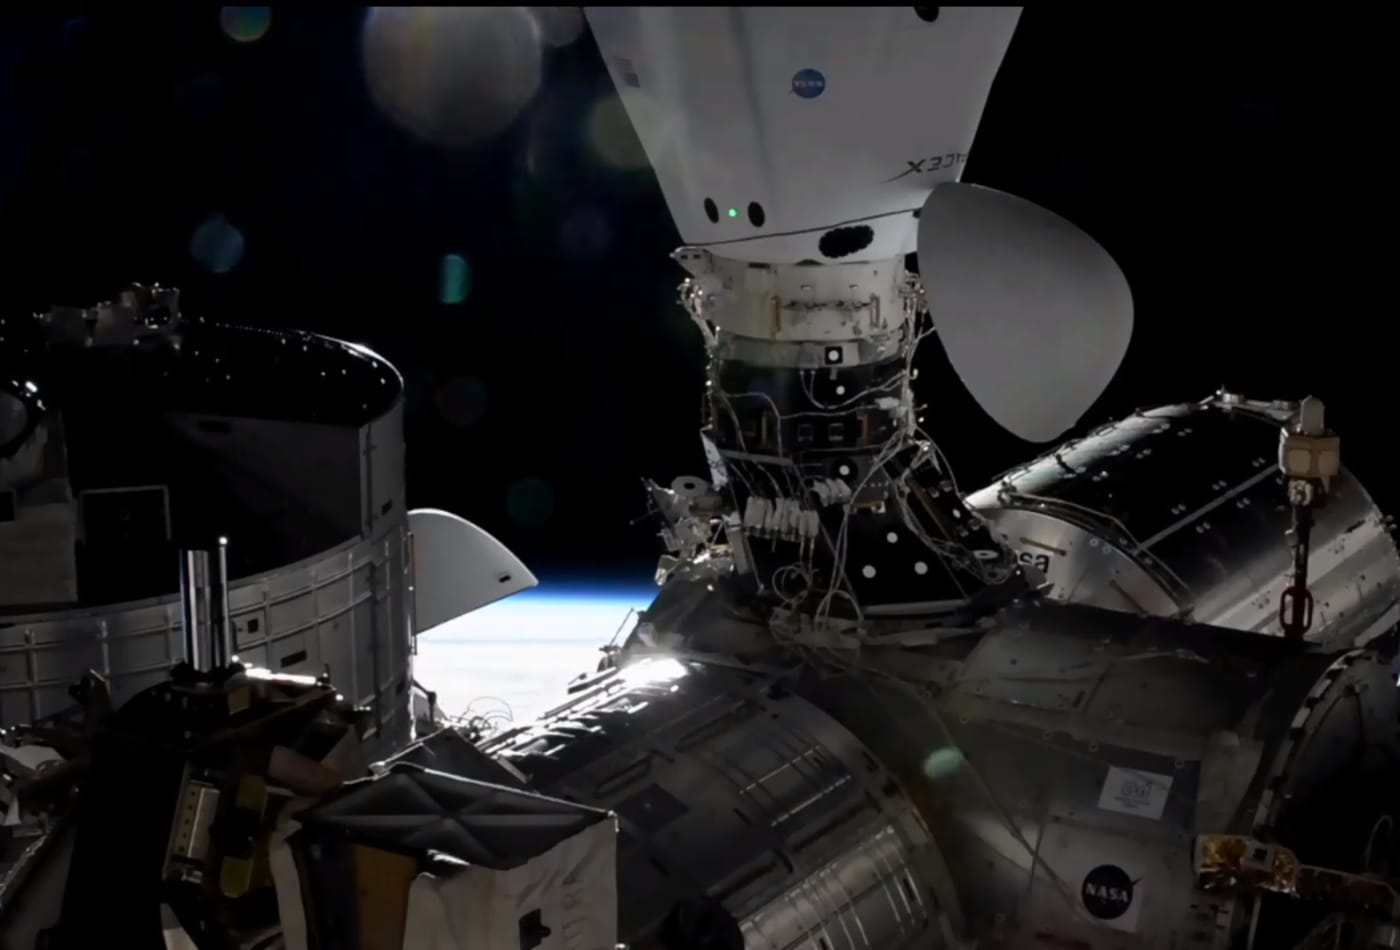 SpaceX now has two spacecraft docked to the space station for the first time